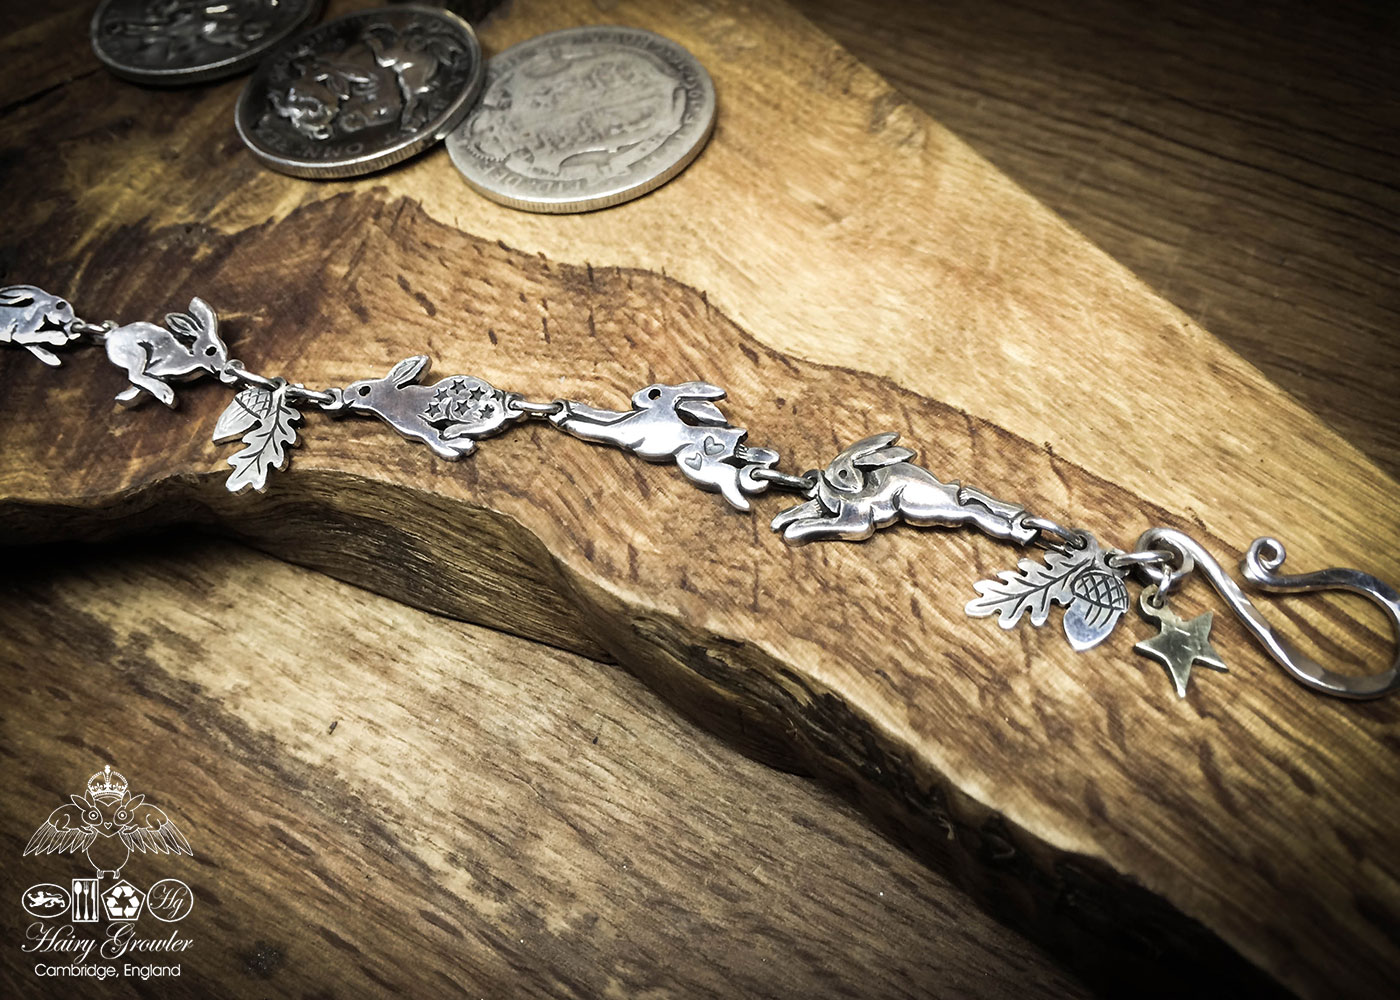 hare bracelet individually handmade and recycled from an old Victorian silver coins